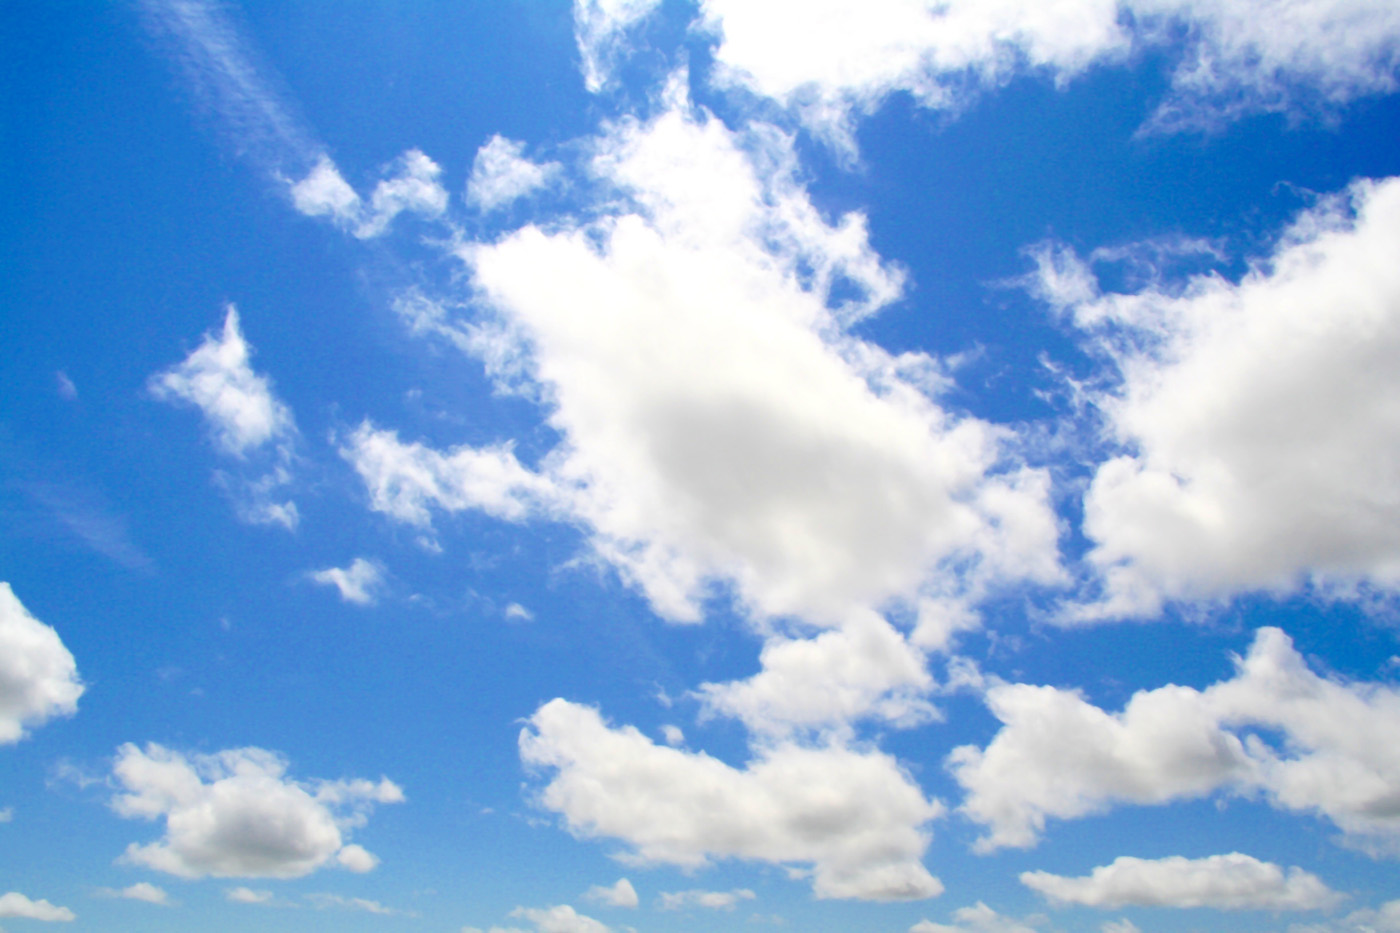 Blue Sky With Clouds Wallpaper 56 Images: Rate My Artist Residency